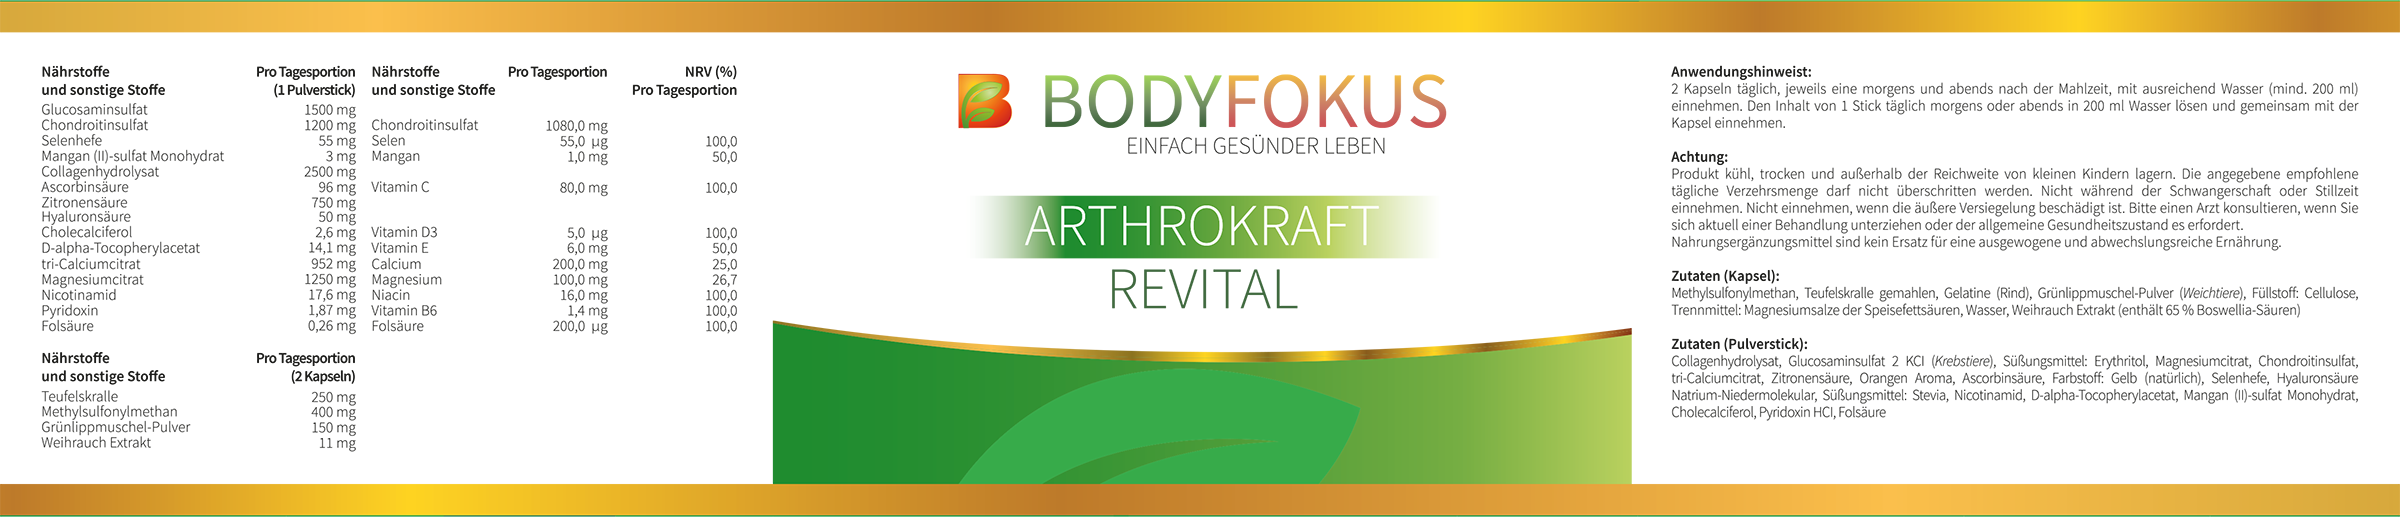 ArthroKraft Revital Etikett